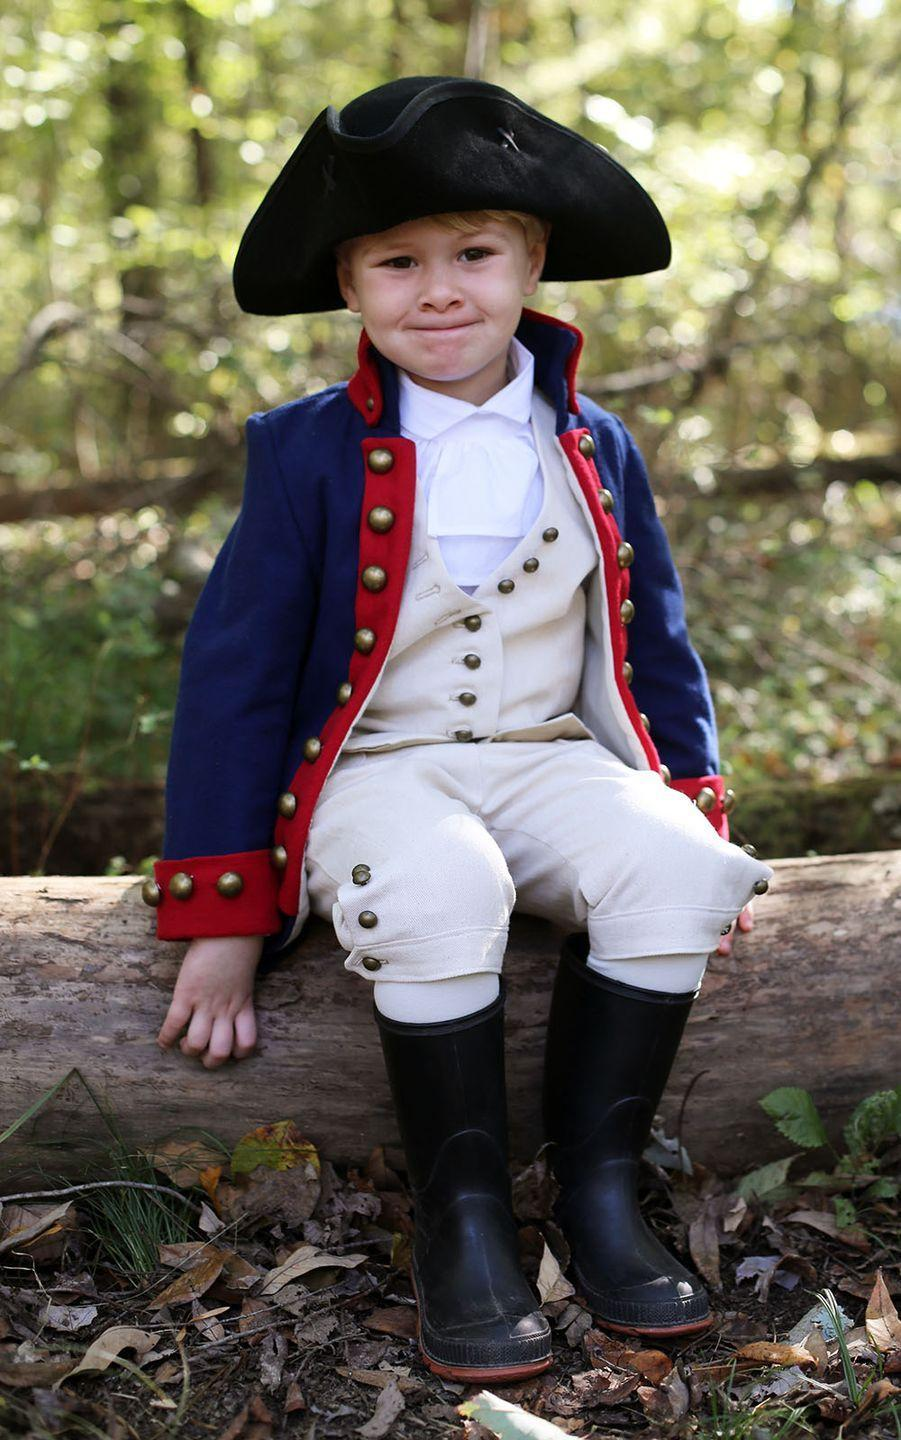 """<p>What's his name? Alexander Hamilton, thanks to this DIY ensemble from style blogger, author and history buff <a href=""""https://www.instagram.com/jessicajquirk/"""" rel=""""nofollow noopener"""" target=""""_blank"""" data-ylk=""""slk:Jessica Quirk"""" class=""""link rapid-noclick-resp"""">Jessica Quirk</a>. Pairing exquisite details such as real metal buttons with everyday staples —like her son's black rain boots — she put together an adorable look.</p><p><a class=""""link rapid-noclick-resp"""" href=""""https://www.amazon.com/Kangaroo-Revolutionary-Deluxe-Colonial-Tricorn/dp/B011WSFIN2/ref=sr_1_6?crid=1O41RFB6NP61C&dchild=1&keywords=tricorn+hat&qid=1598658155&sprefix=tricorn%2Caps%2C167&sr=8-6&tag=syn-yahoo-20&ascsubtag=%5Bartid%7C10055.g.33836165%5Bsrc%7Cyahoo-us"""" rel=""""nofollow noopener"""" target=""""_blank"""" data-ylk=""""slk:SHOP TRICORN HAT"""">SHOP TRICORN HAT</a></p><p><em><a href=""""https://www.starsandfield.com/weblog/2018/10/28/time-traveling-lil-alexander-hamilton"""" rel=""""nofollow noopener"""" target=""""_blank"""" data-ylk=""""slk:See more at Stars + Field »"""" class=""""link rapid-noclick-resp"""">See more at Stars + Field »</a></em></p>"""